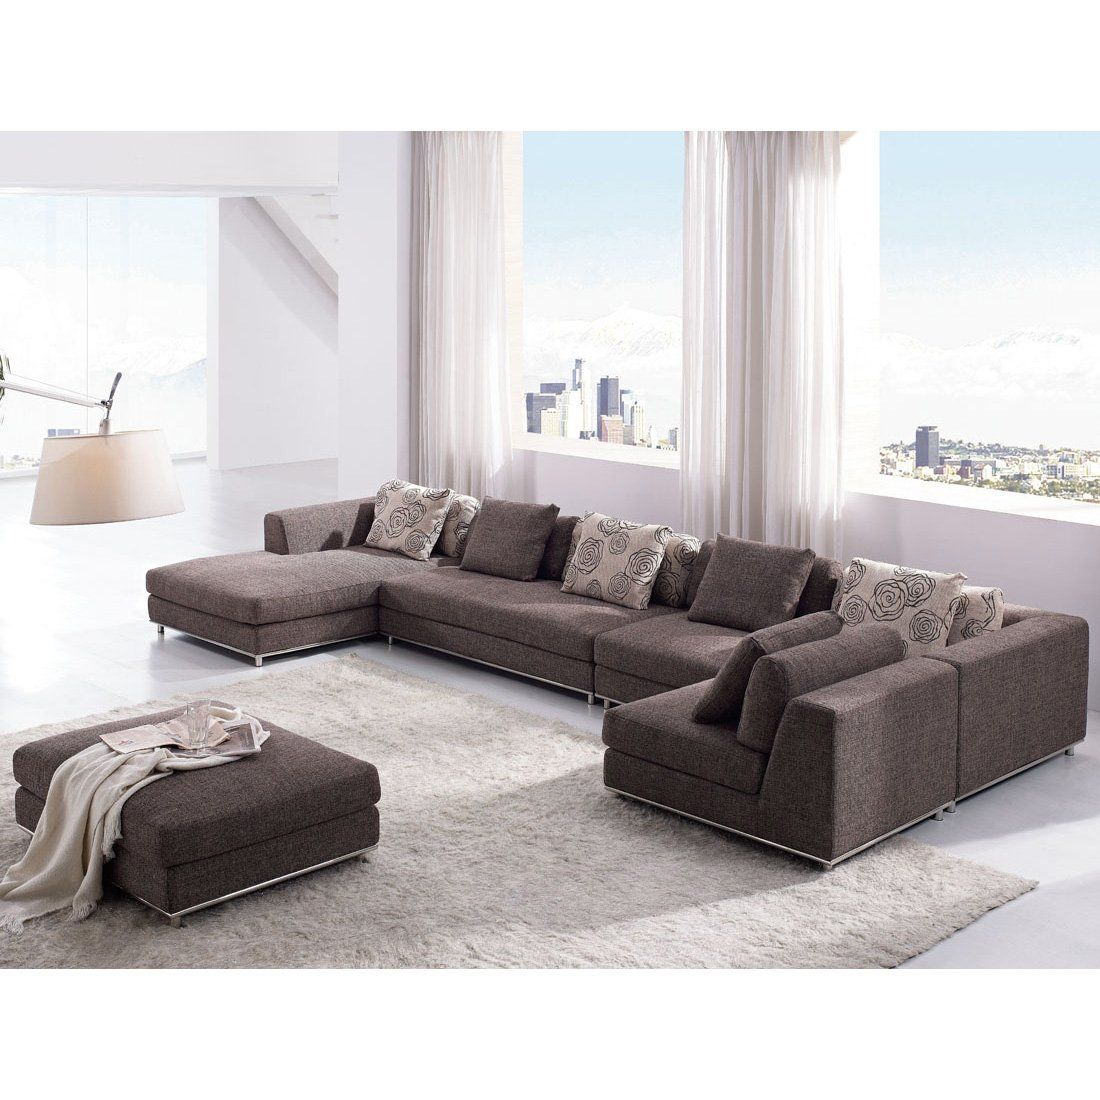 Basement Couch Possibility Tosh Furniture Contemporary Modern